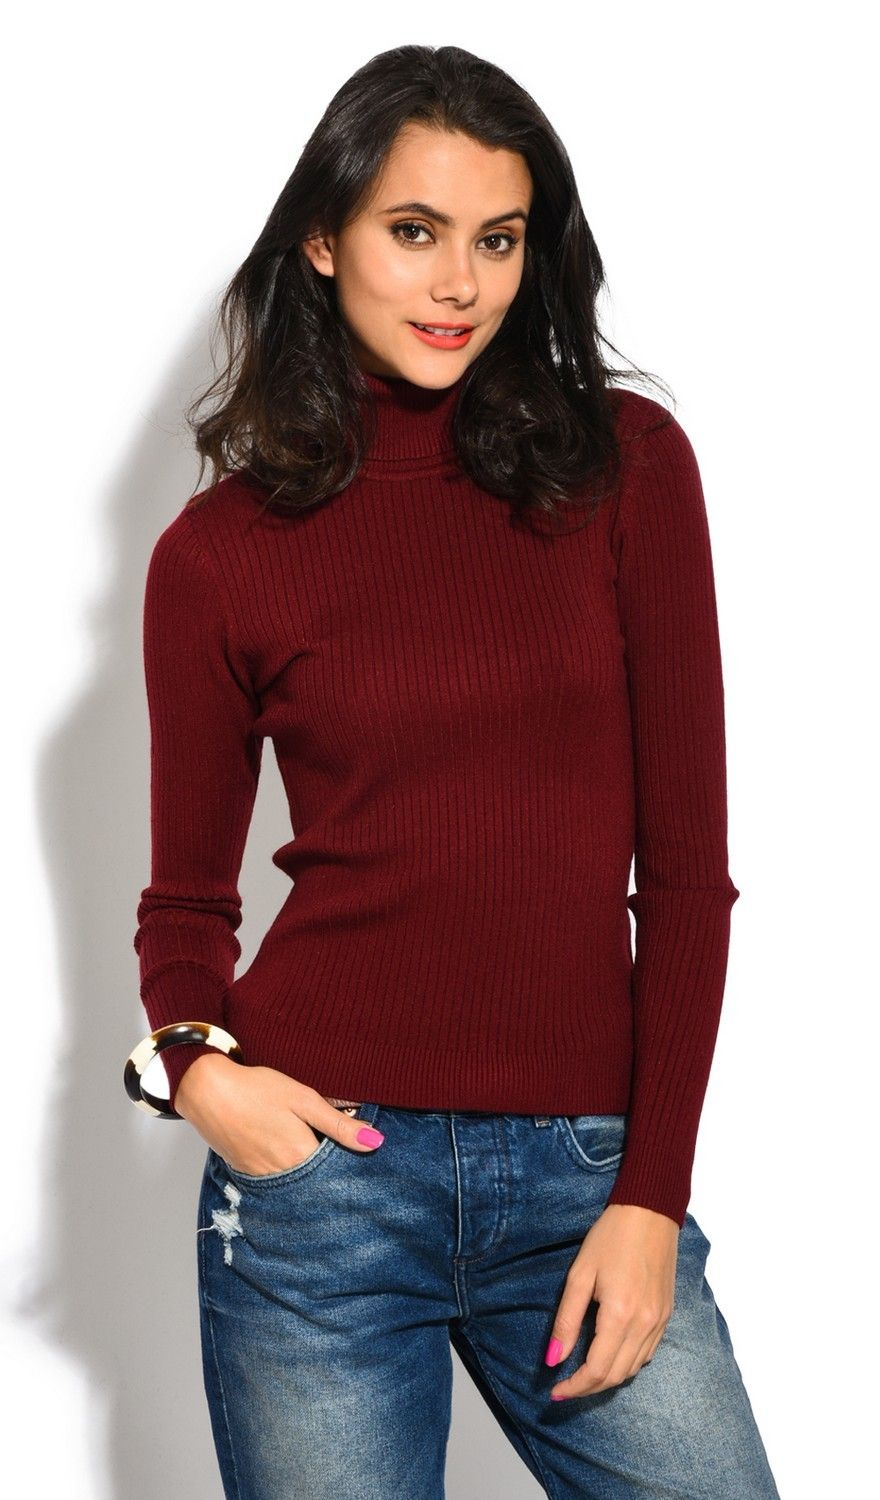 Assuili Roll Neck Long Sleeve Ribbed Sweater in Maroon